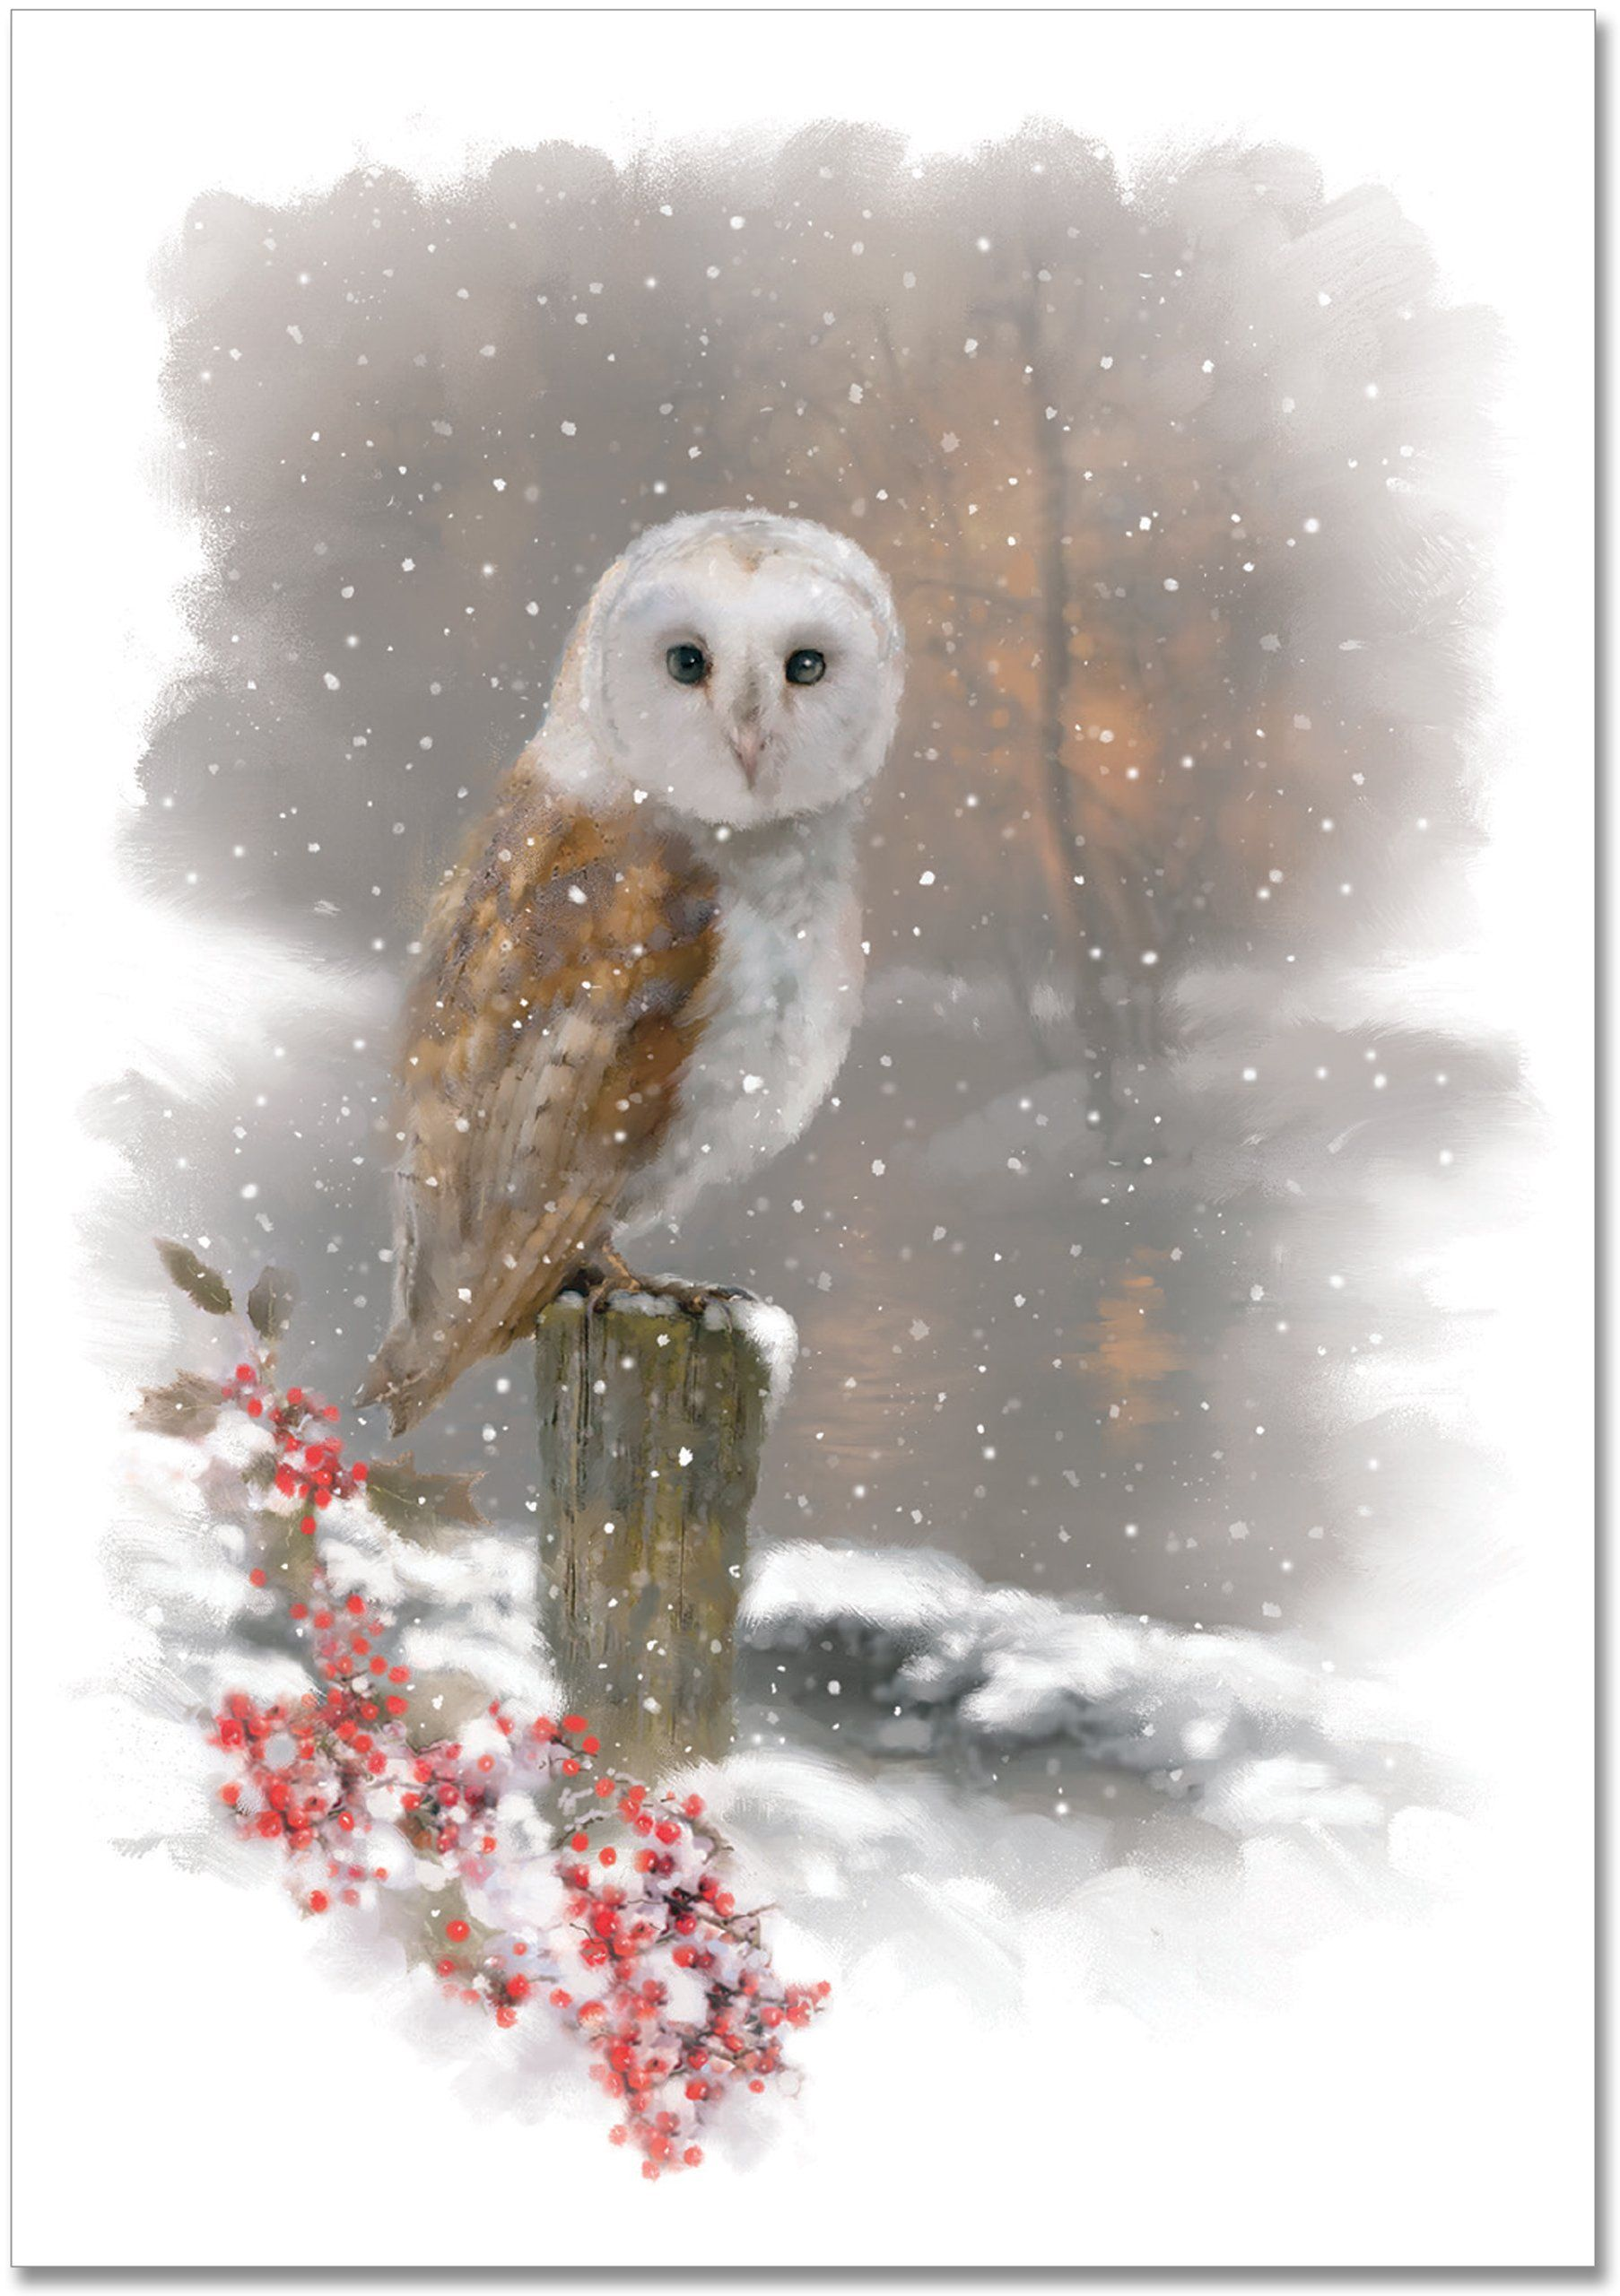 Winter owl small boxed holiday cards christmas cards greeting winter owl small boxed holiday cards christmas cards greeting cards peter pauper kristyandbryce Choice Image